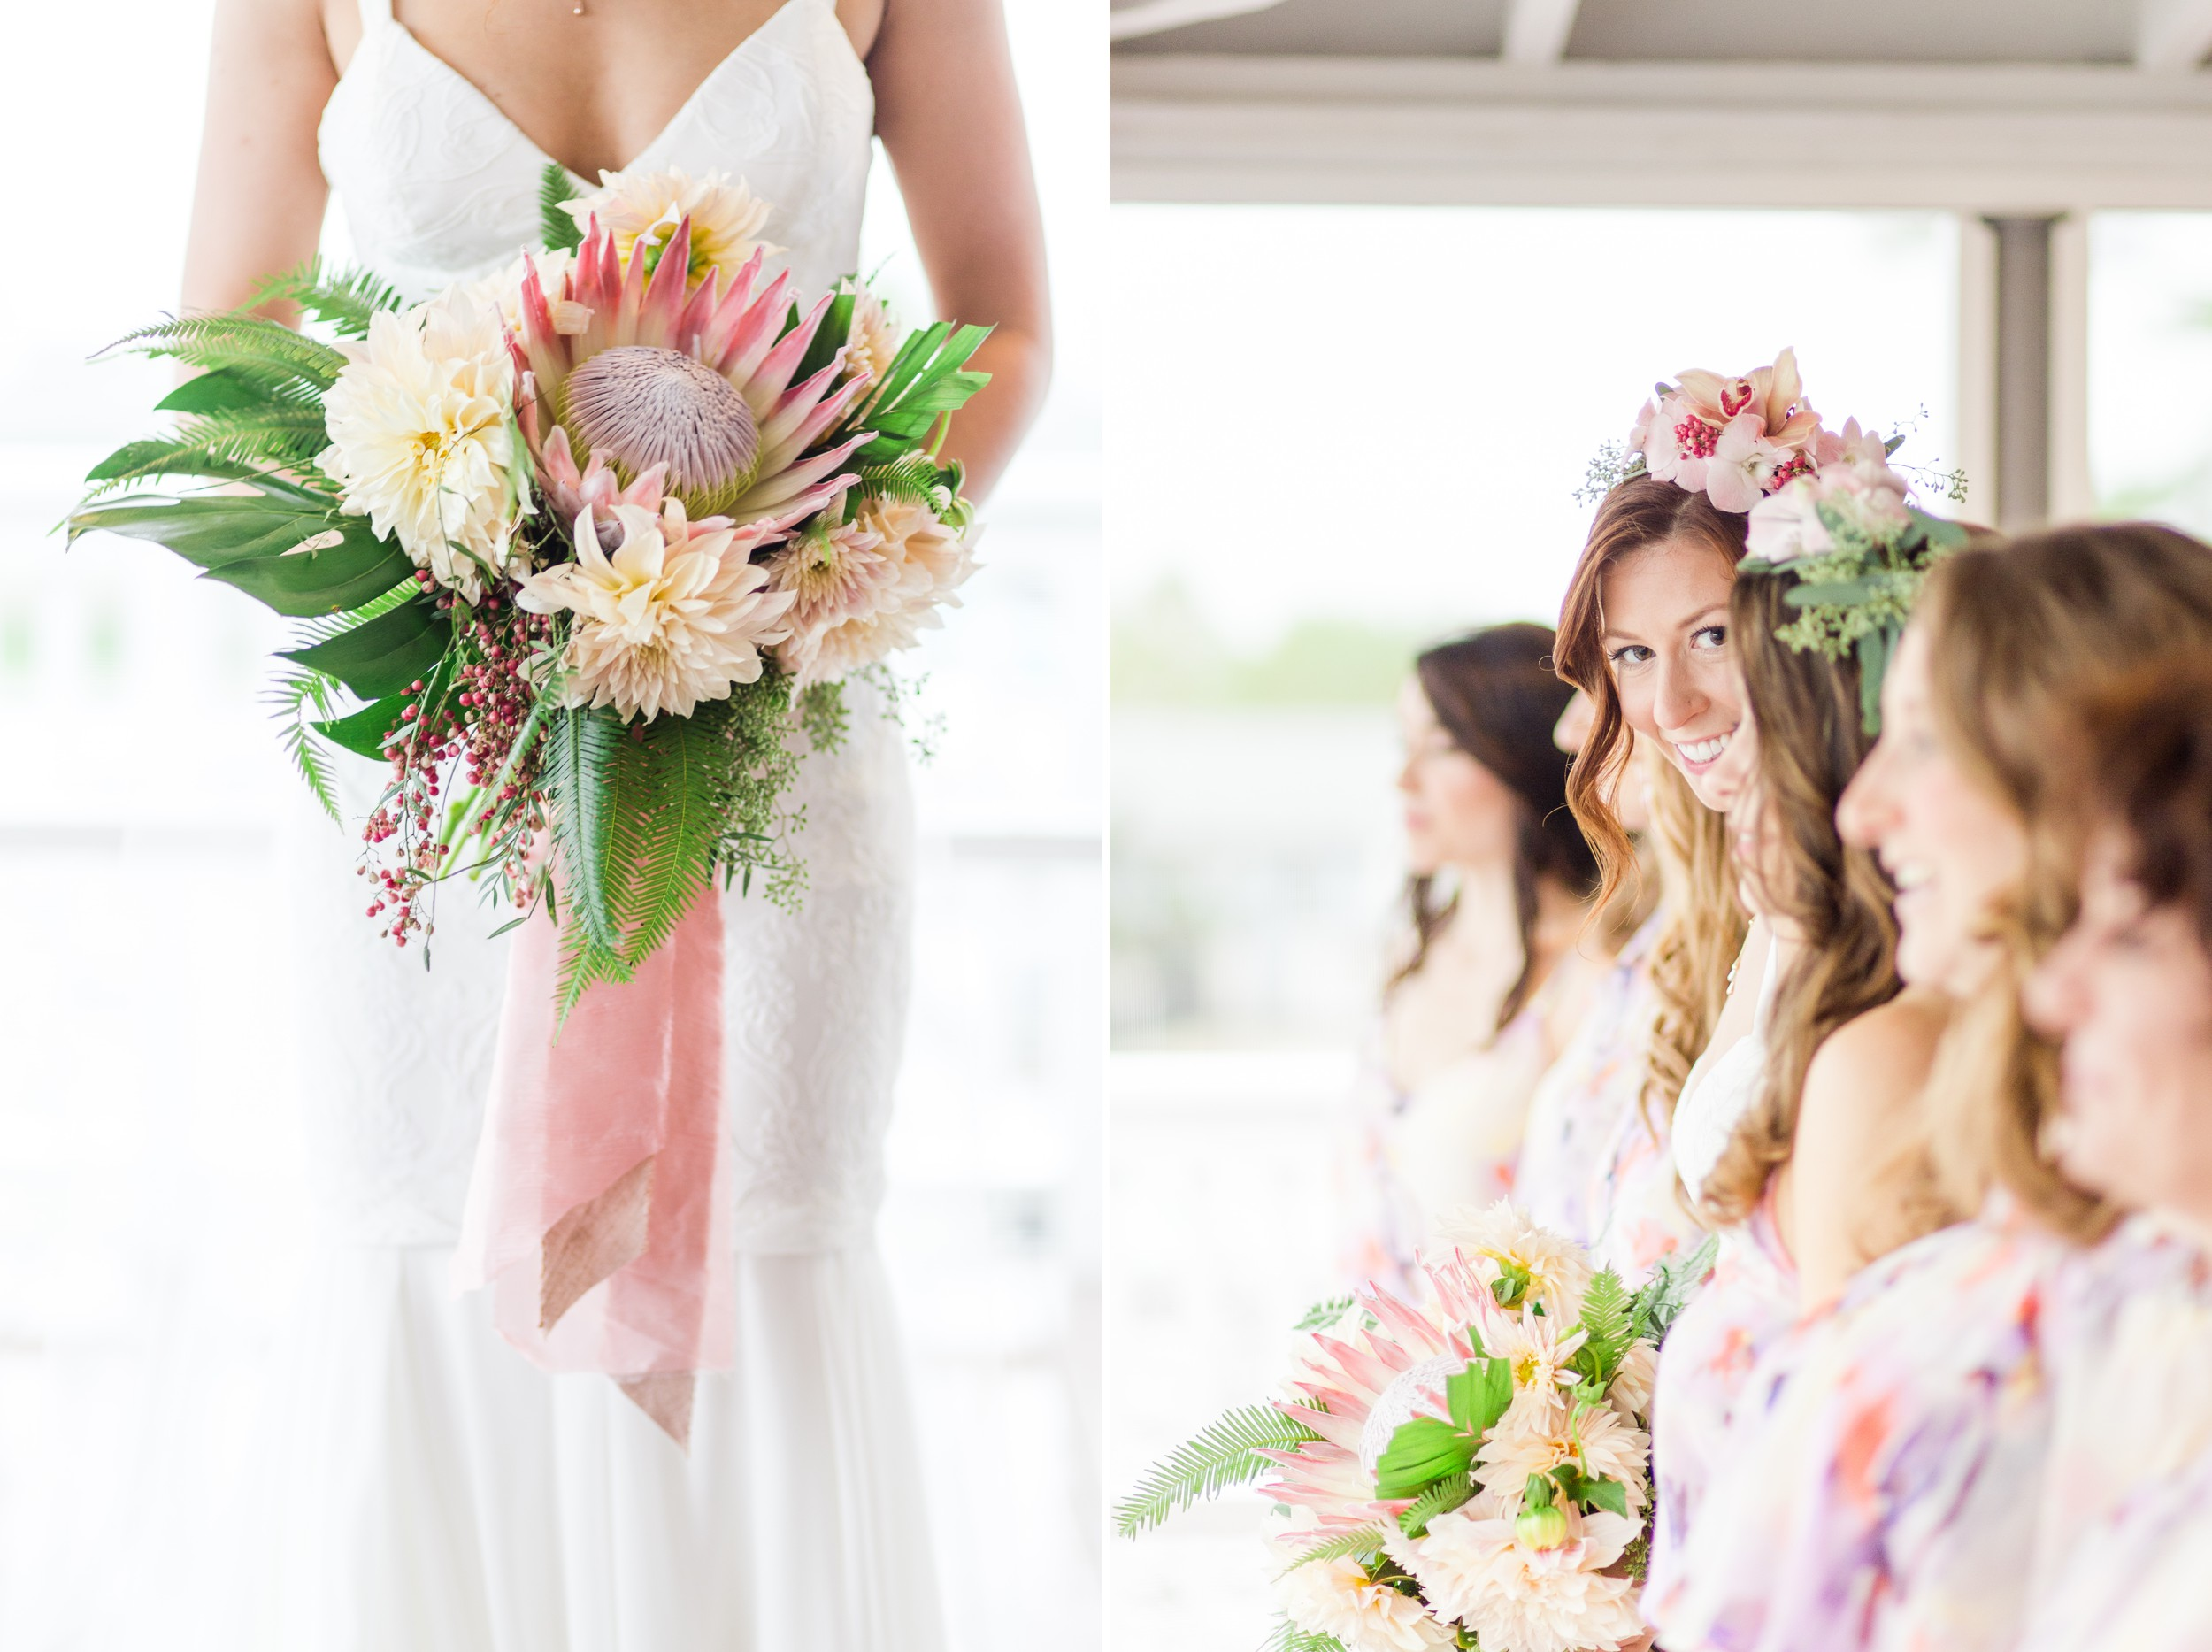 Palm_Bouquet_Bride